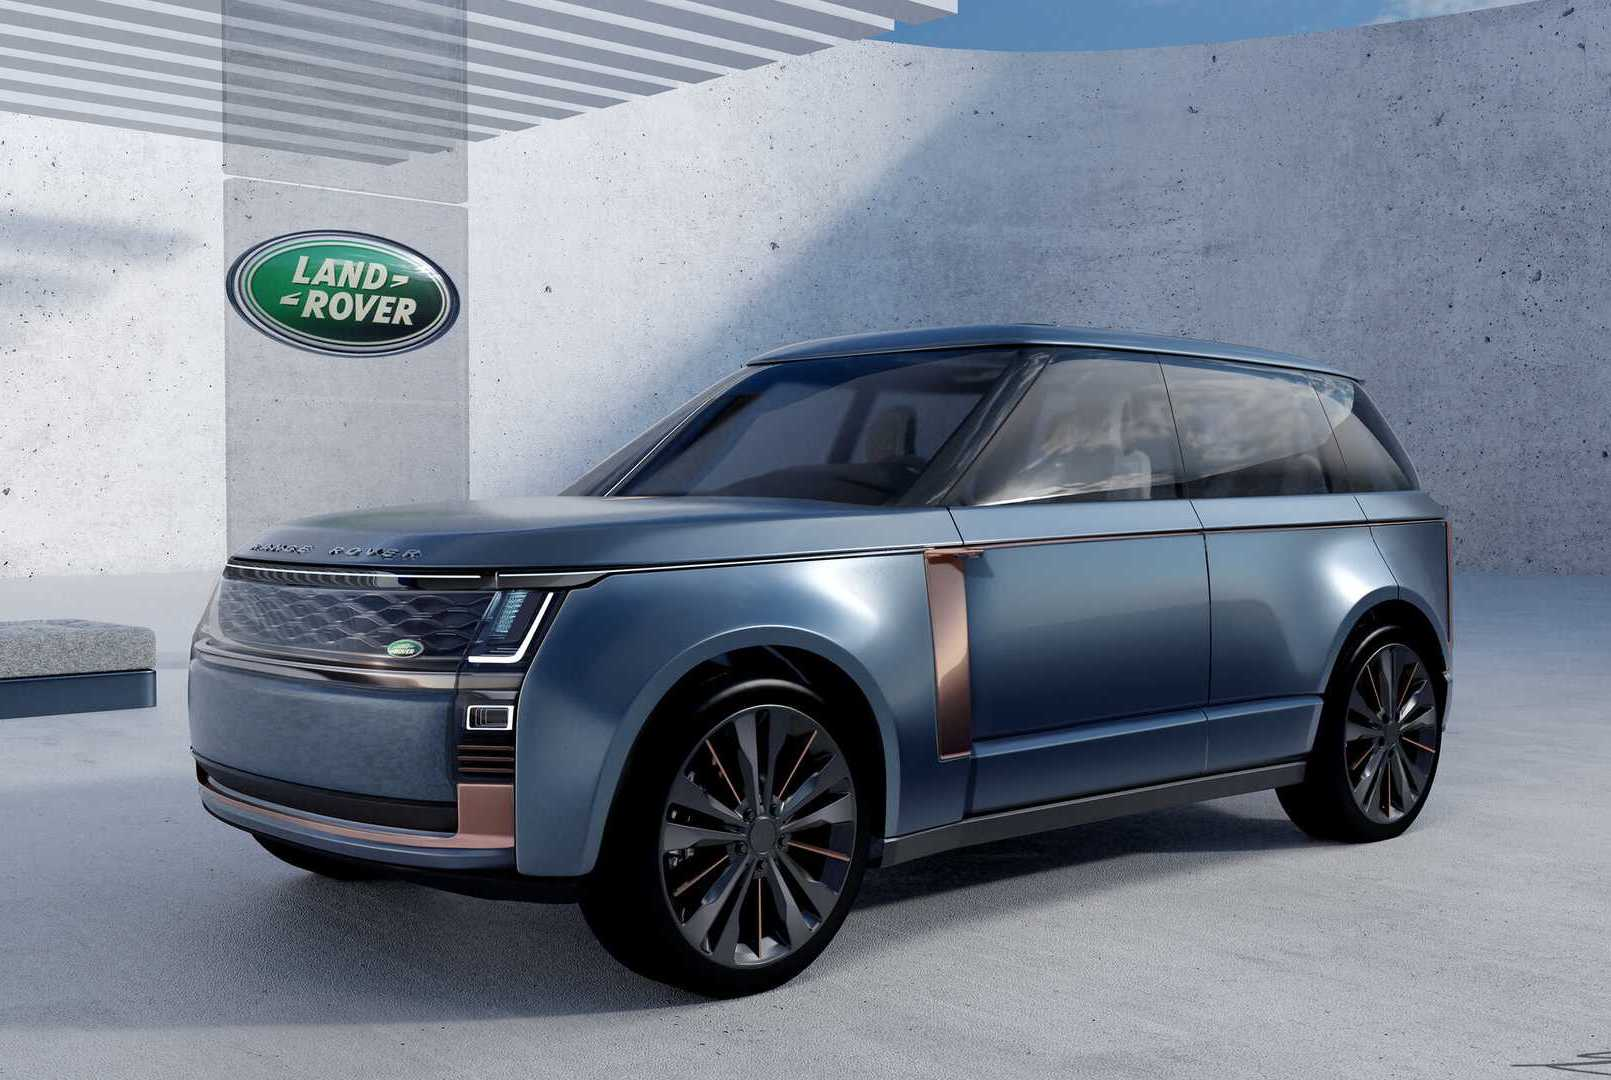 Land Rover Intern Envisions New Range Rover With Suicide Doors